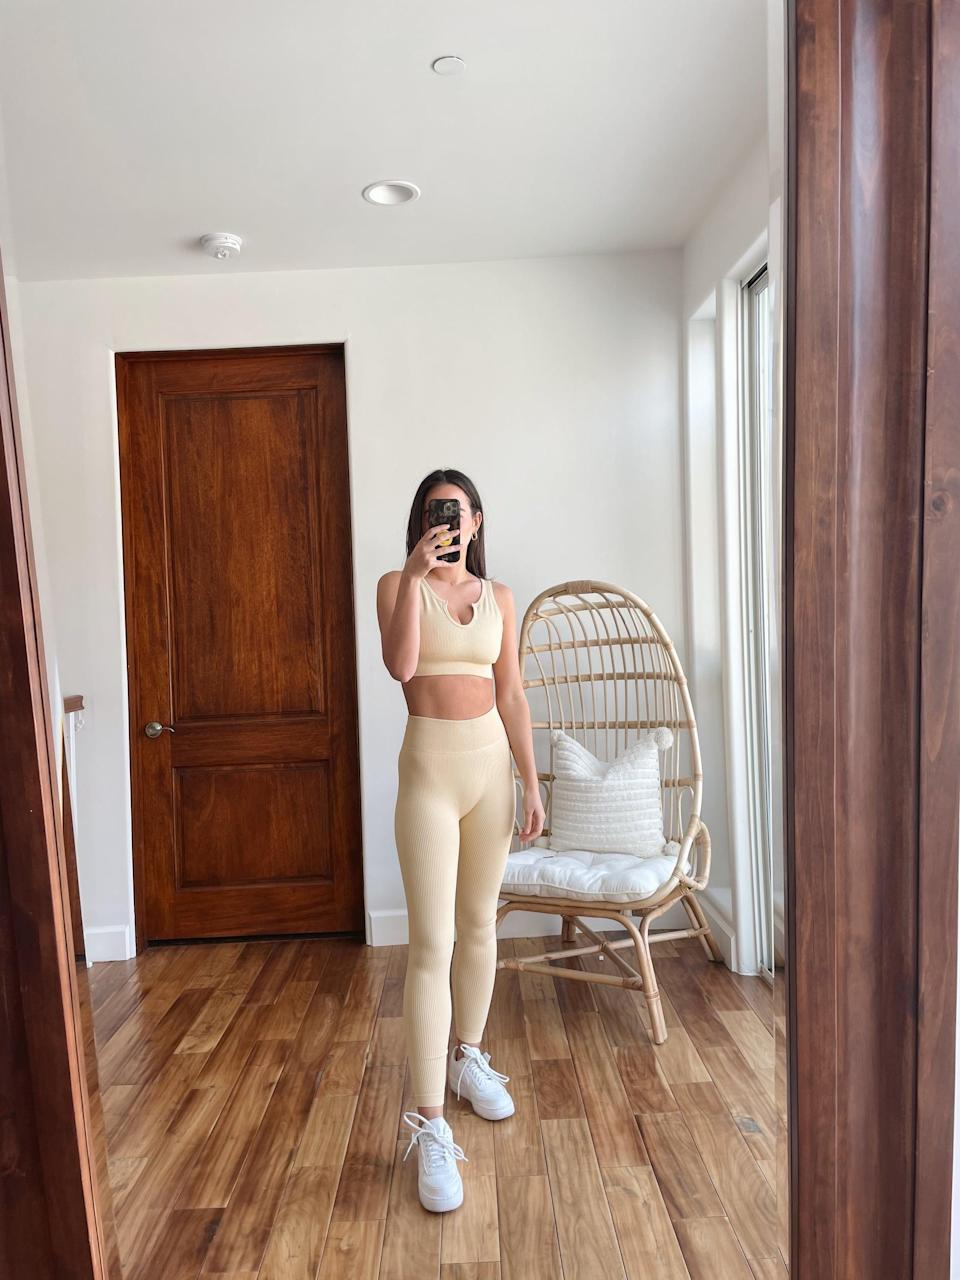 <p>I found this beige-colored <span>Beaufident Women's Workout Set</span> ($27) to be ultrachic, and I think it looks great no matter where you wear it. It's the perfect outfit for perusing the farmers' market or doing a sweaty workout. This outfit can do it all, no matter the occasion! </p>